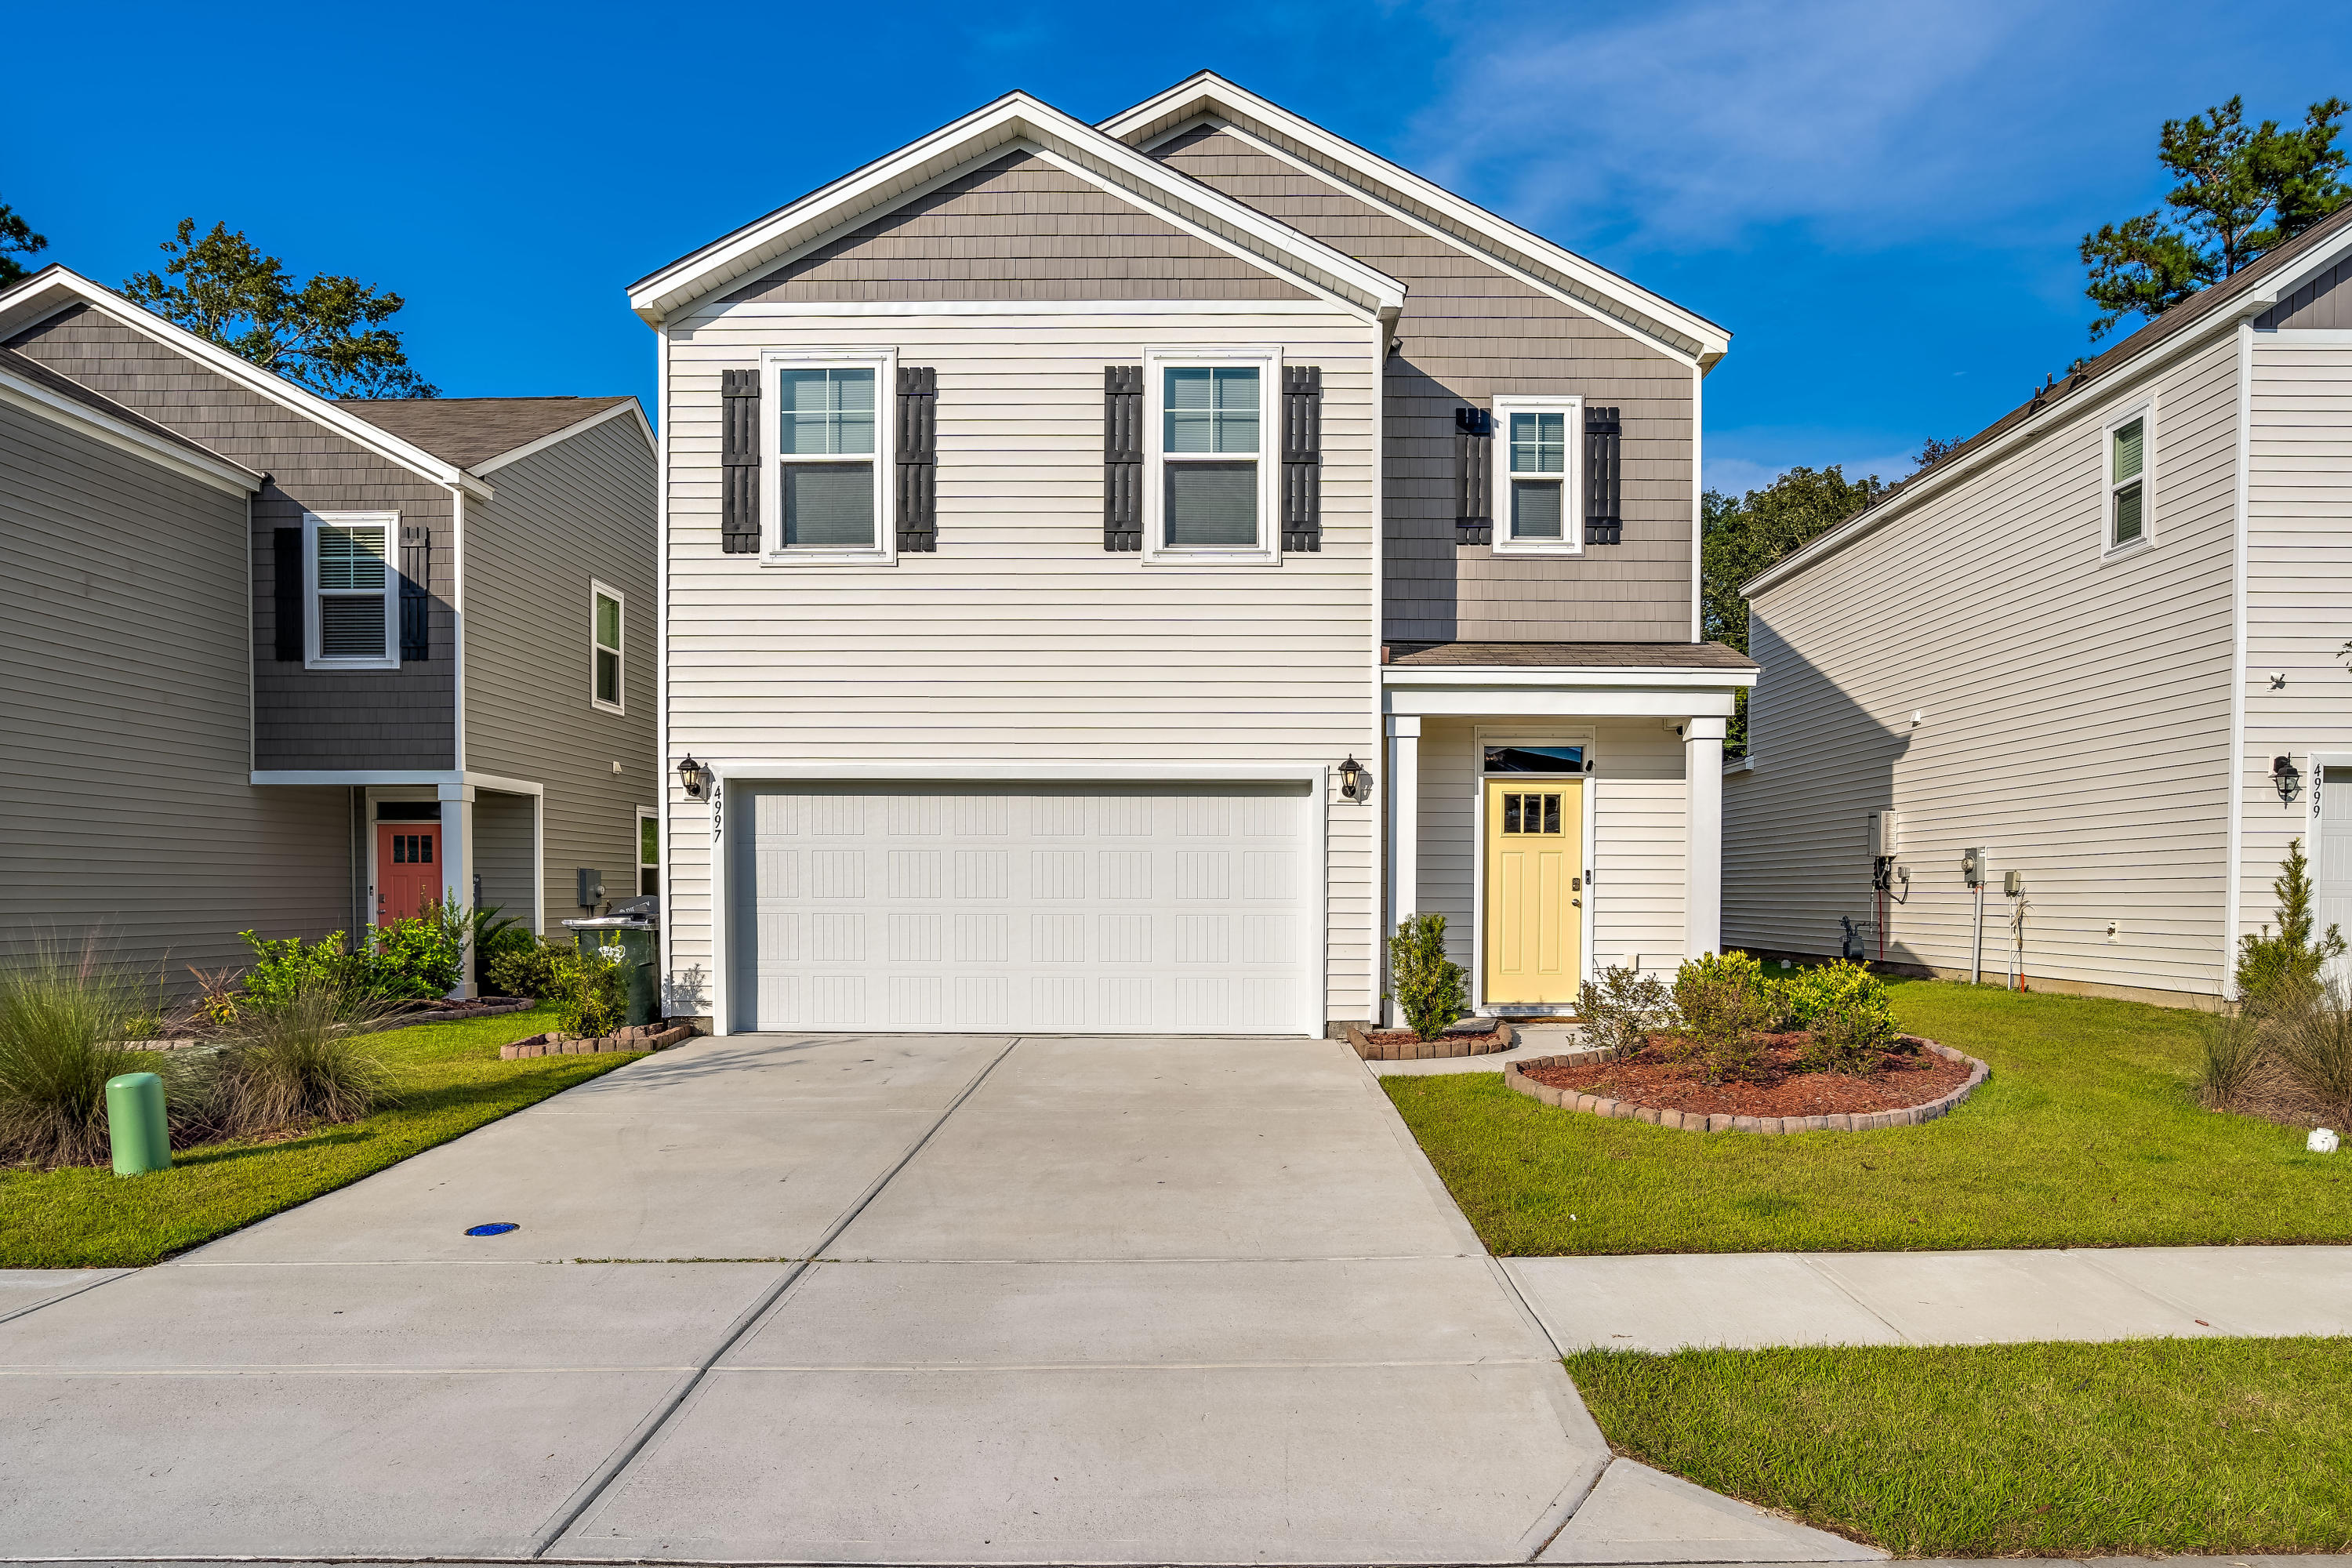 4997 Paddy Field Way Ladson, SC 29456